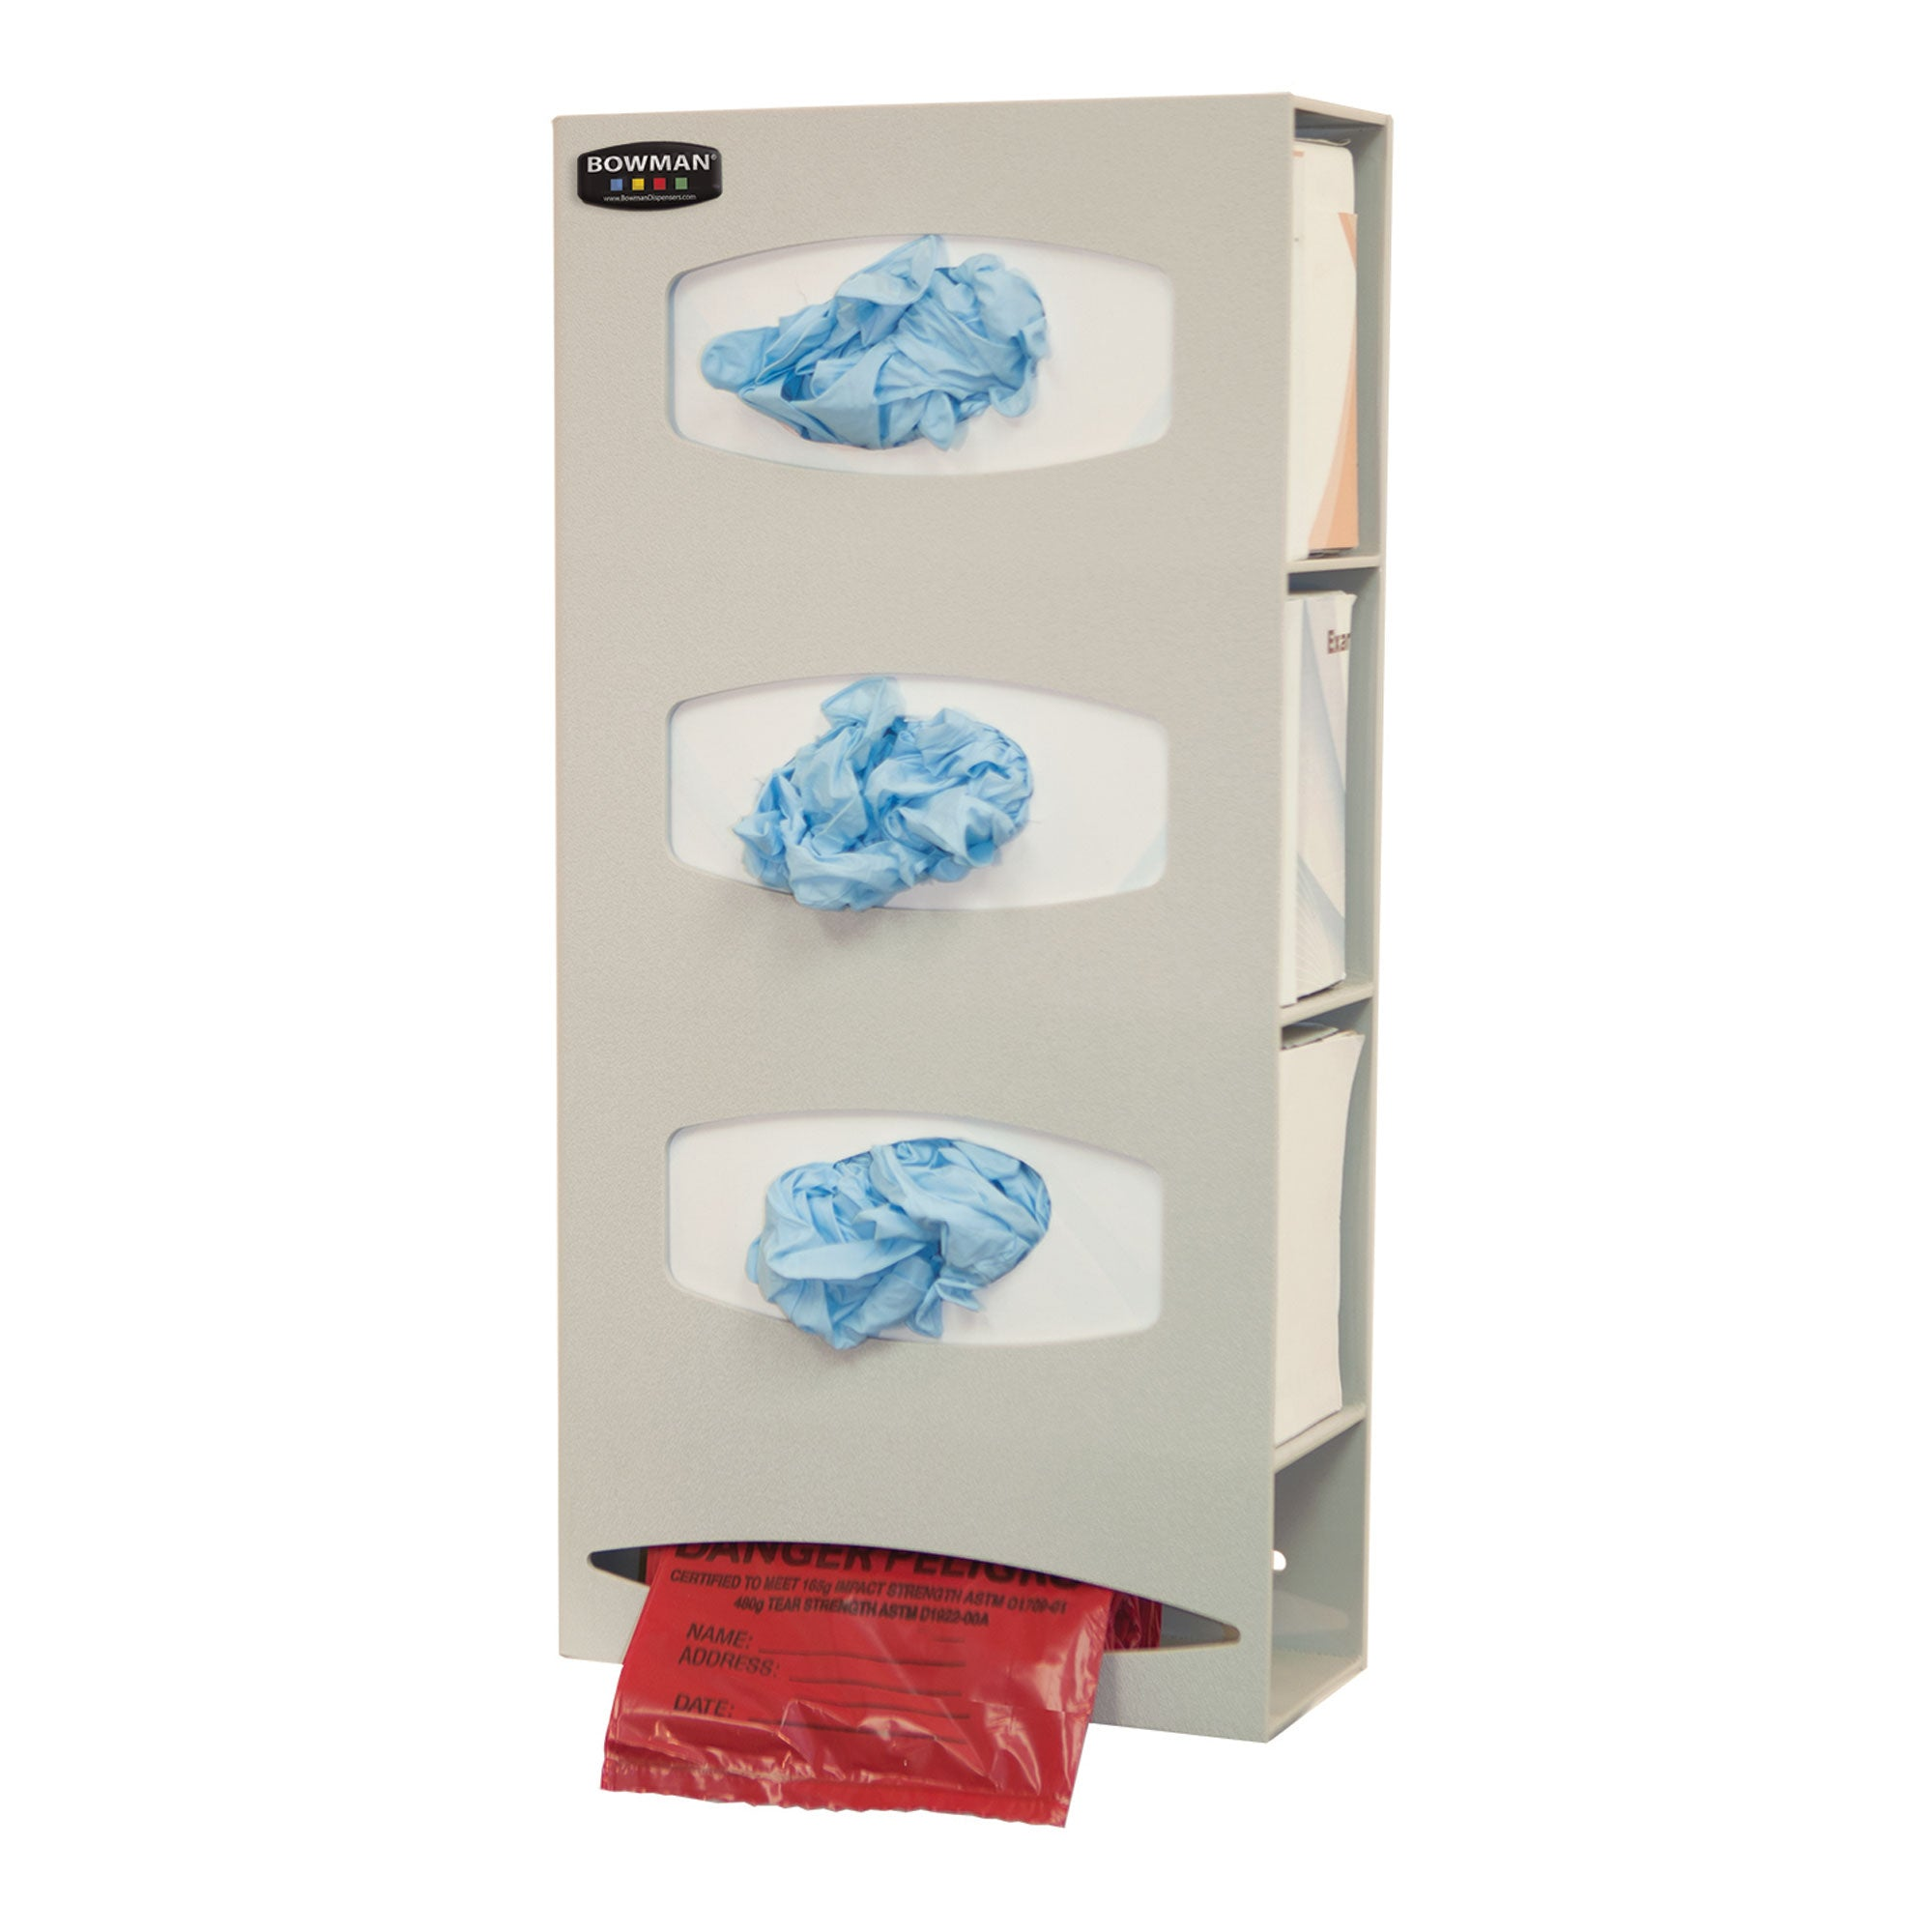 Bowman ABS Triple Glove Box Dispenser with Single Bag Dispenser